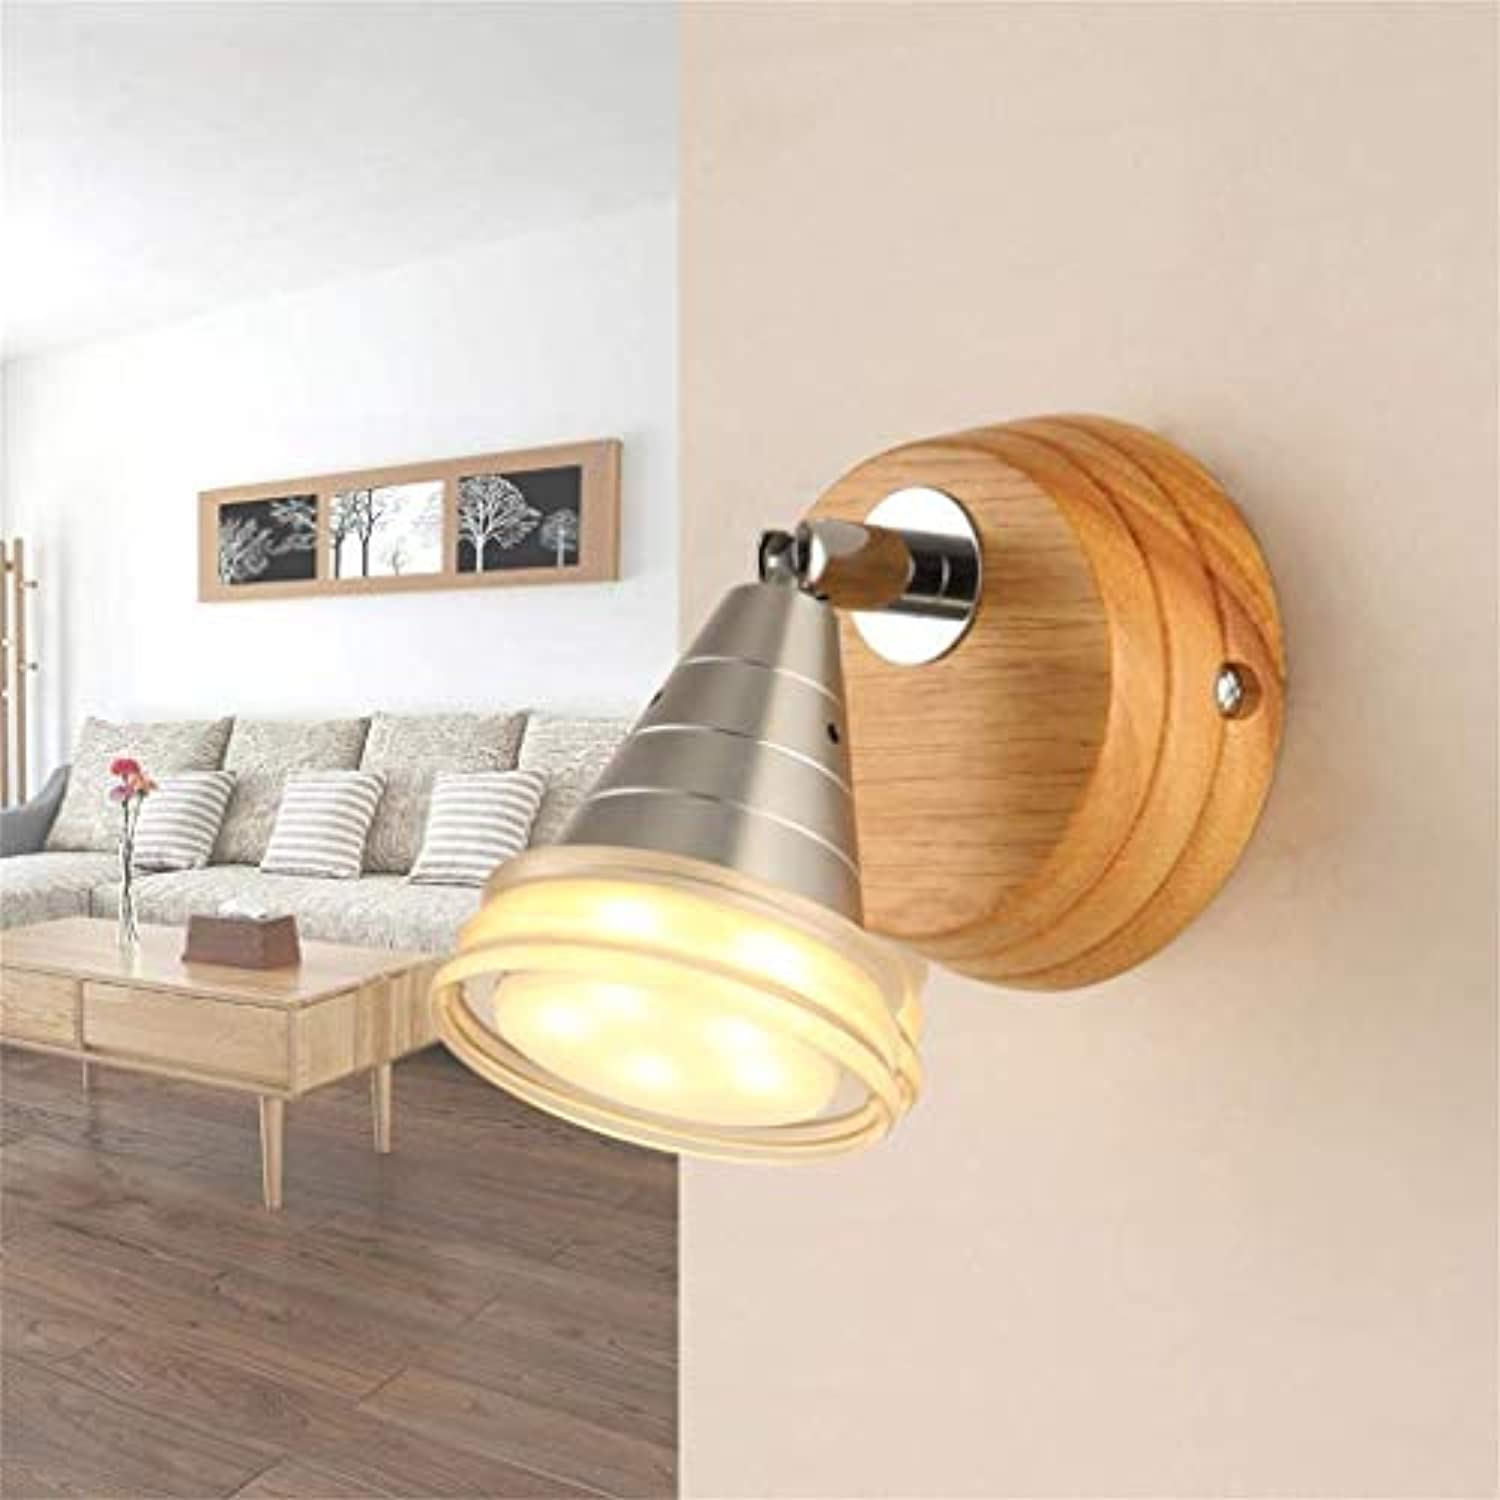 Oudan Moderne, minimalistische Lounge Light, warme Holz Wandleuchte LED (Farbe   -, Gre   -)